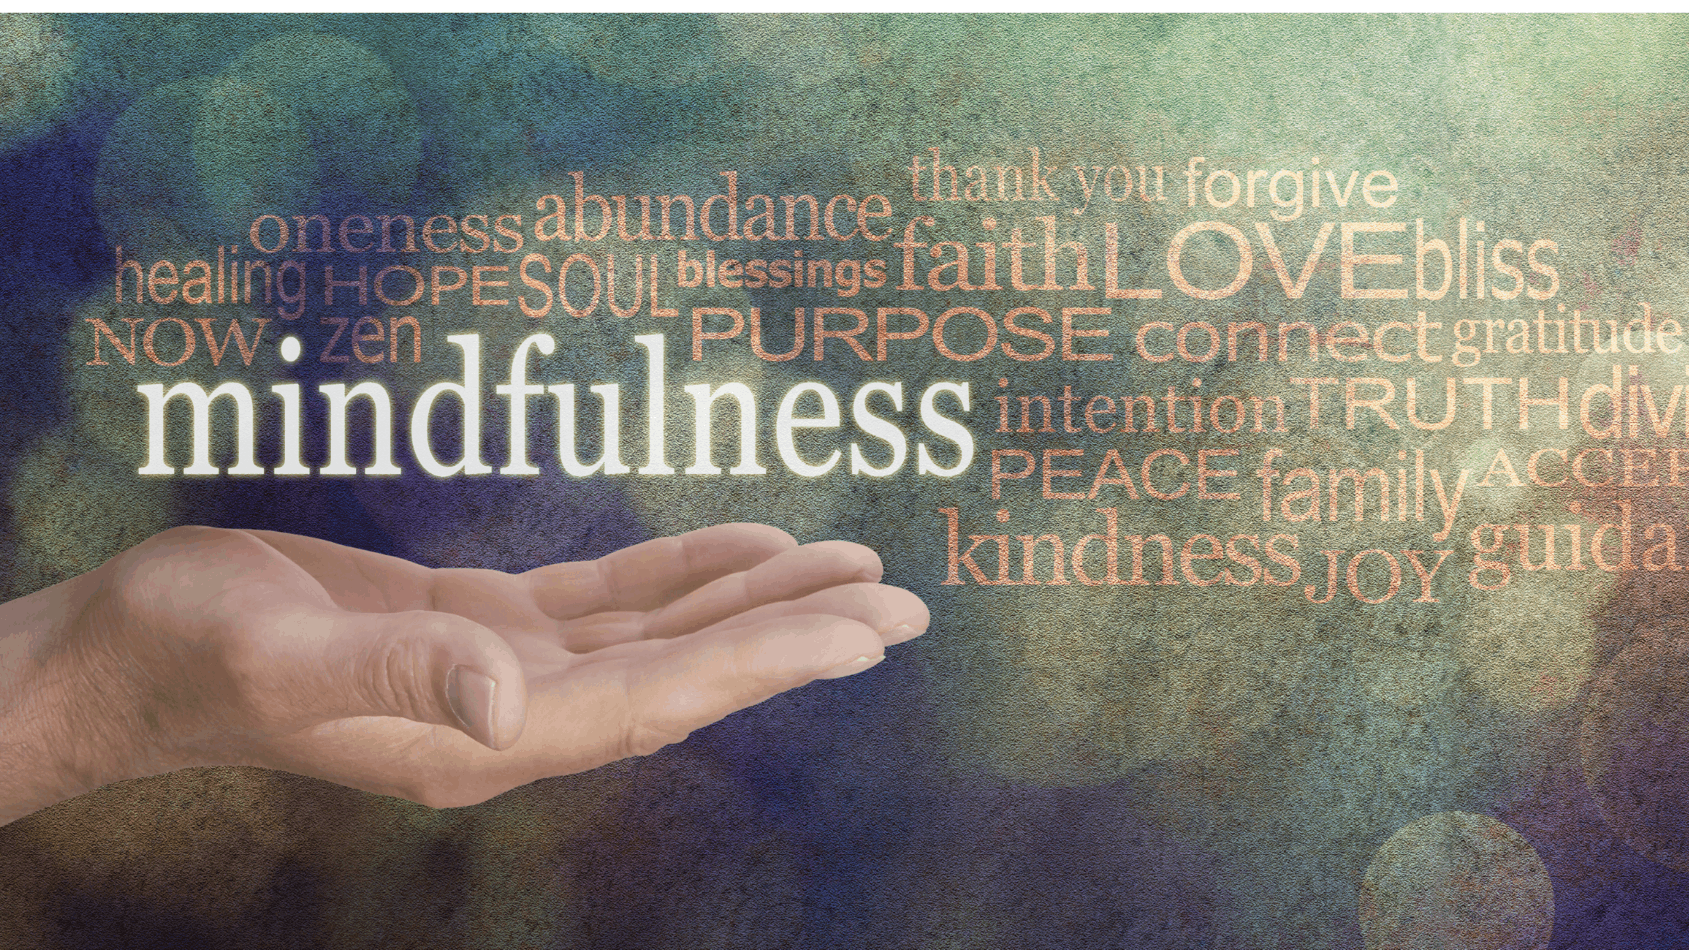 Mindfulness awareness and practice can benefit your physical, mental and emotional health and wellbeing. Try these simple strategies to incorporate mindfulness into your daily routine. #mindfulness #mindfulnessawareness #mentalhealth